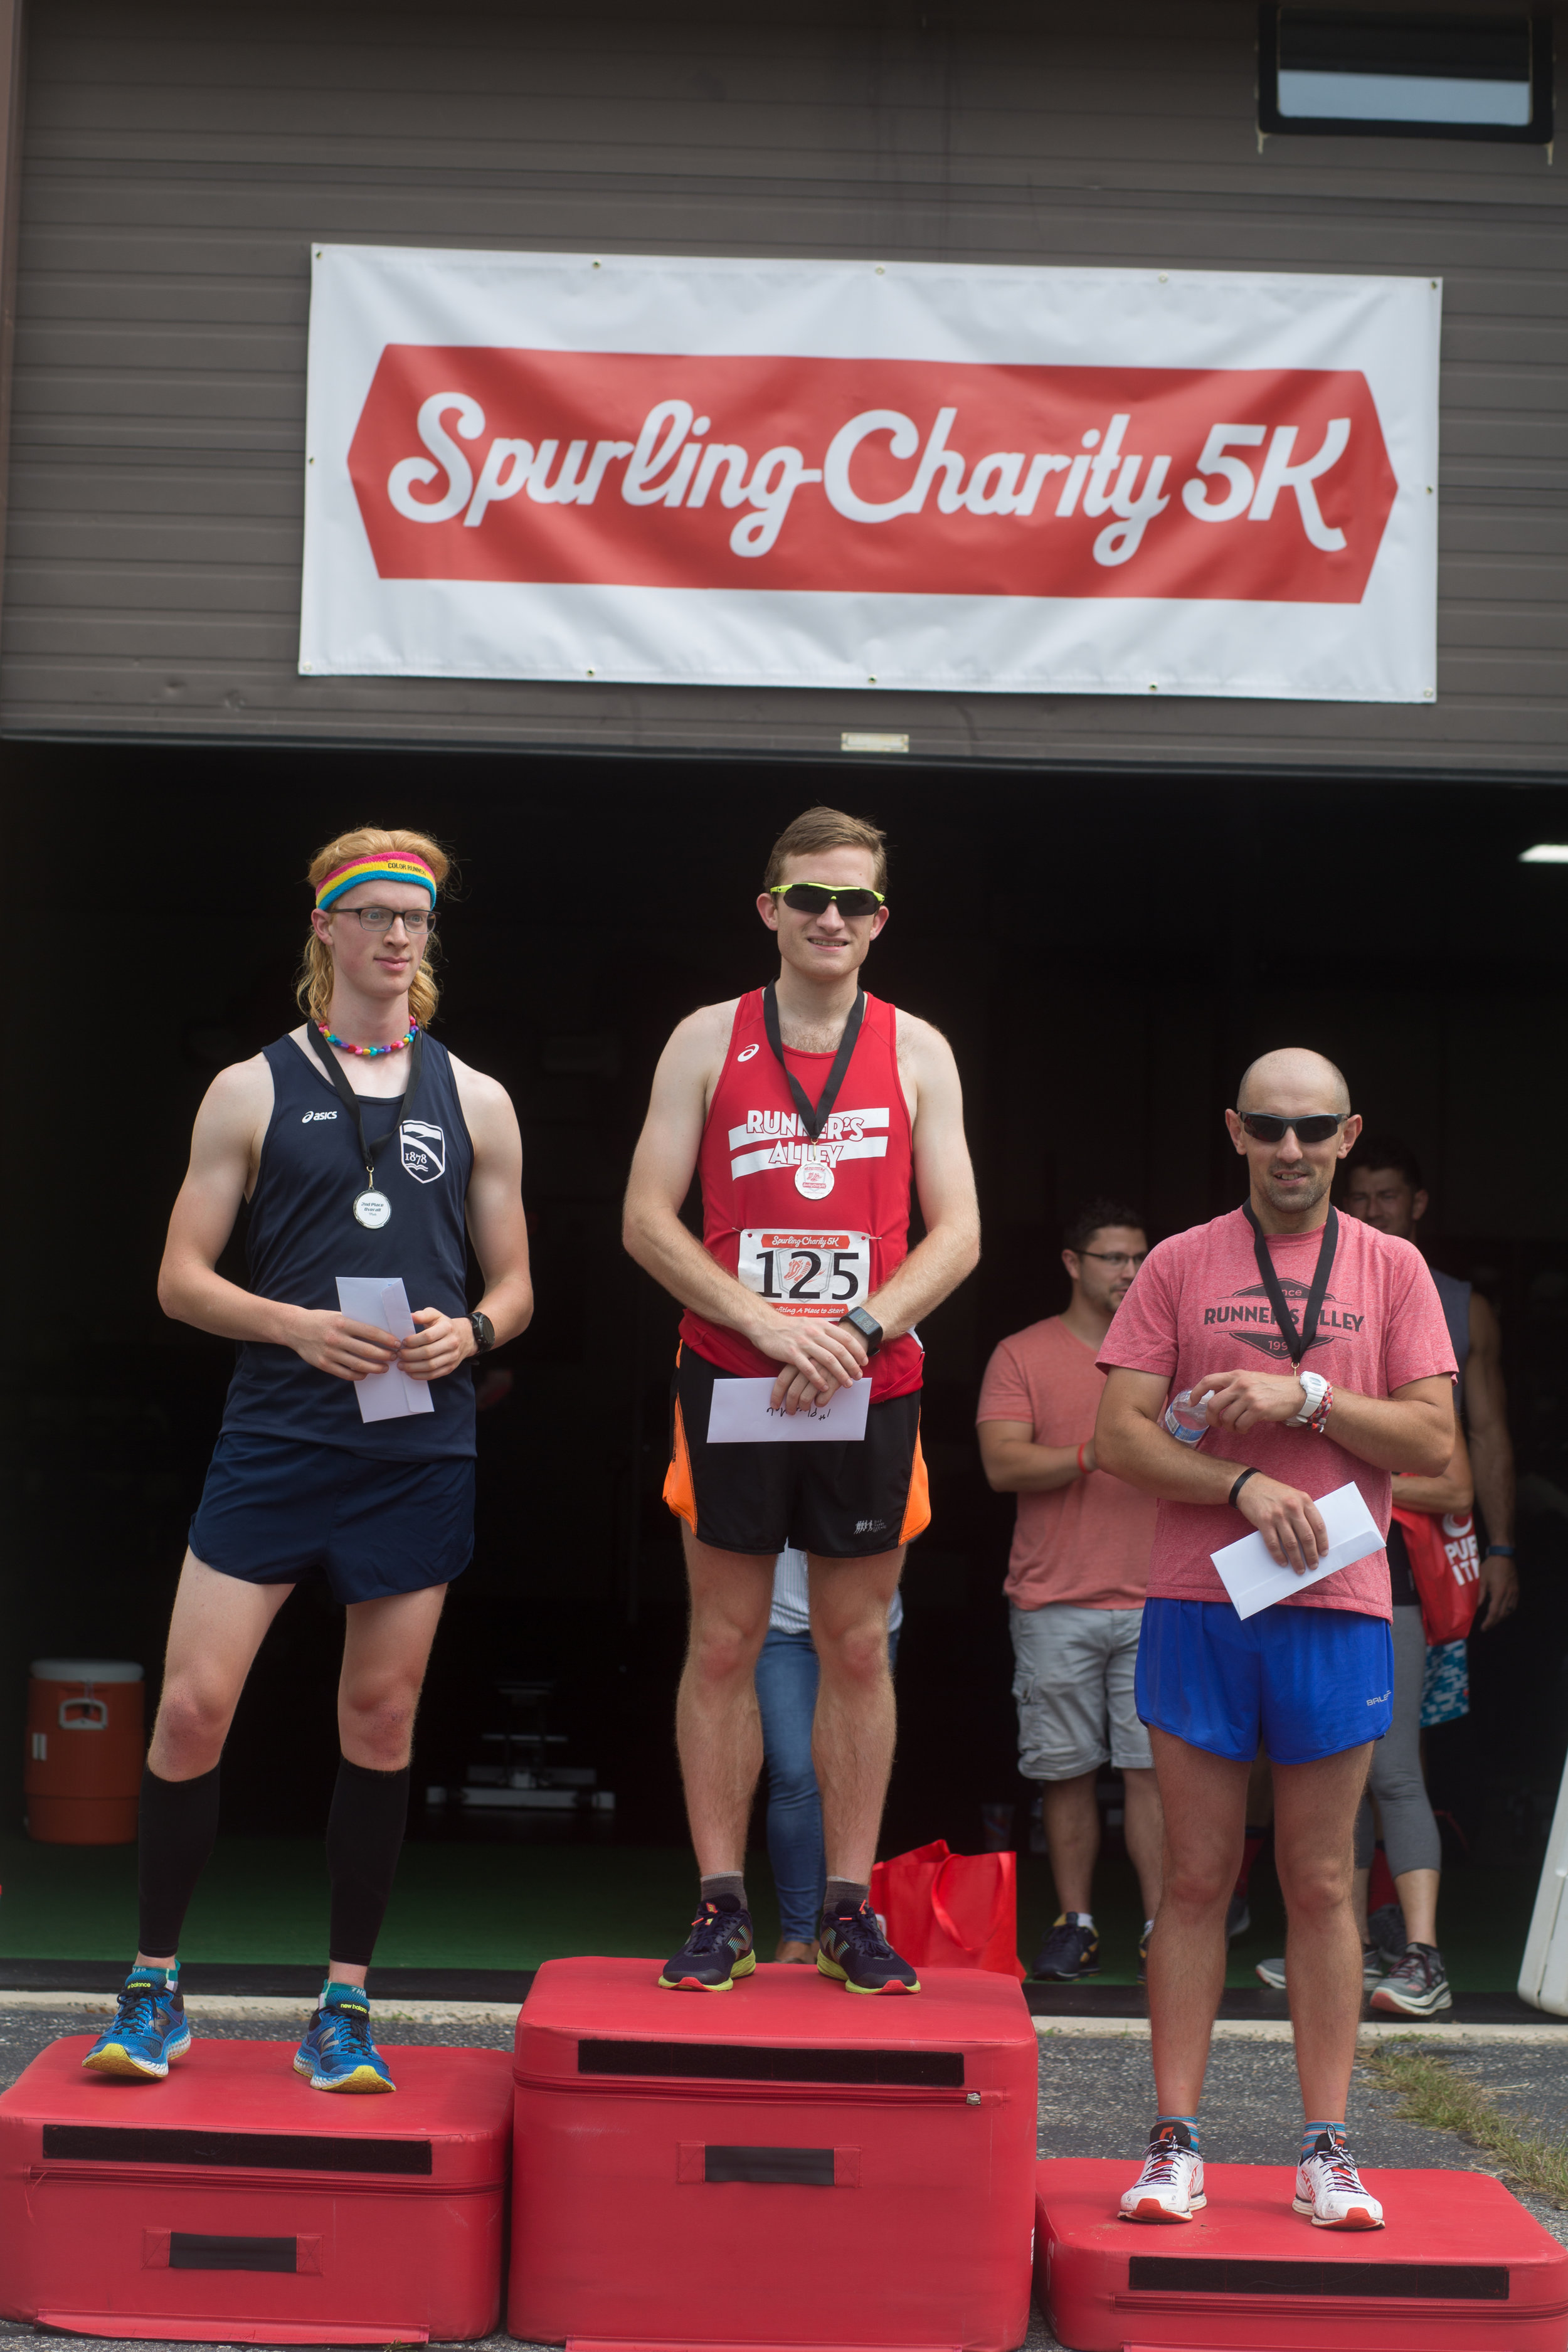 SpurlingCharity5k2018-168.jpg